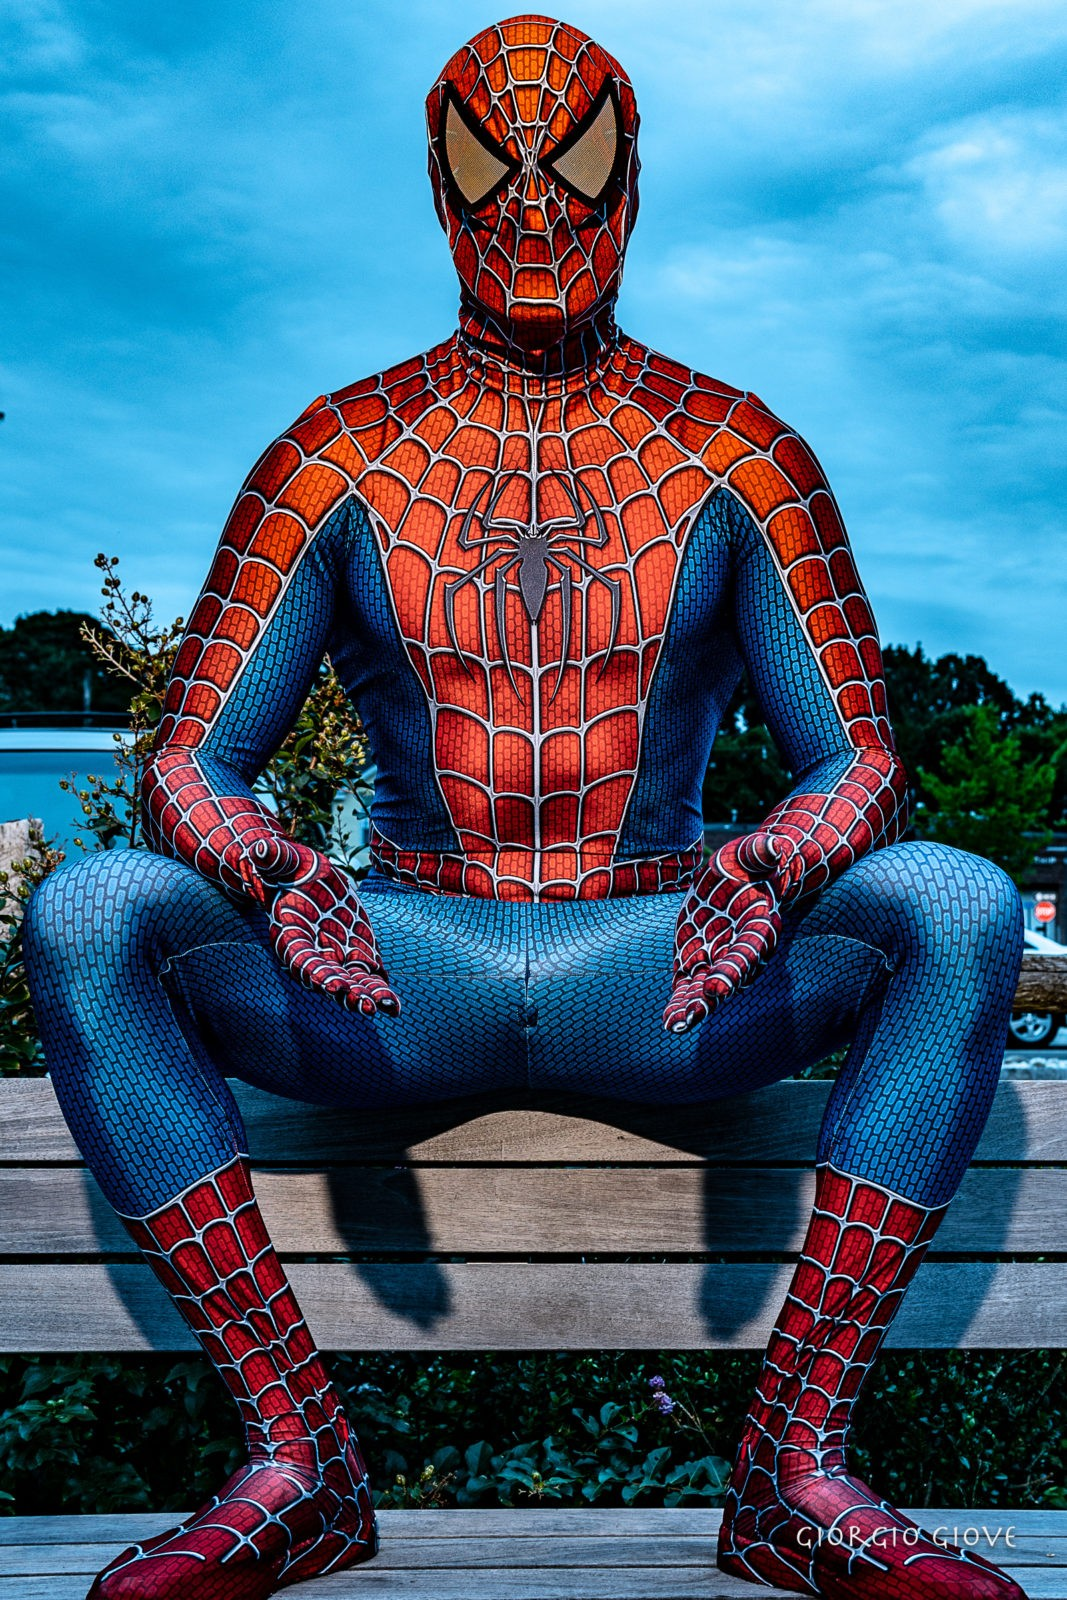 Spider Man in the moment